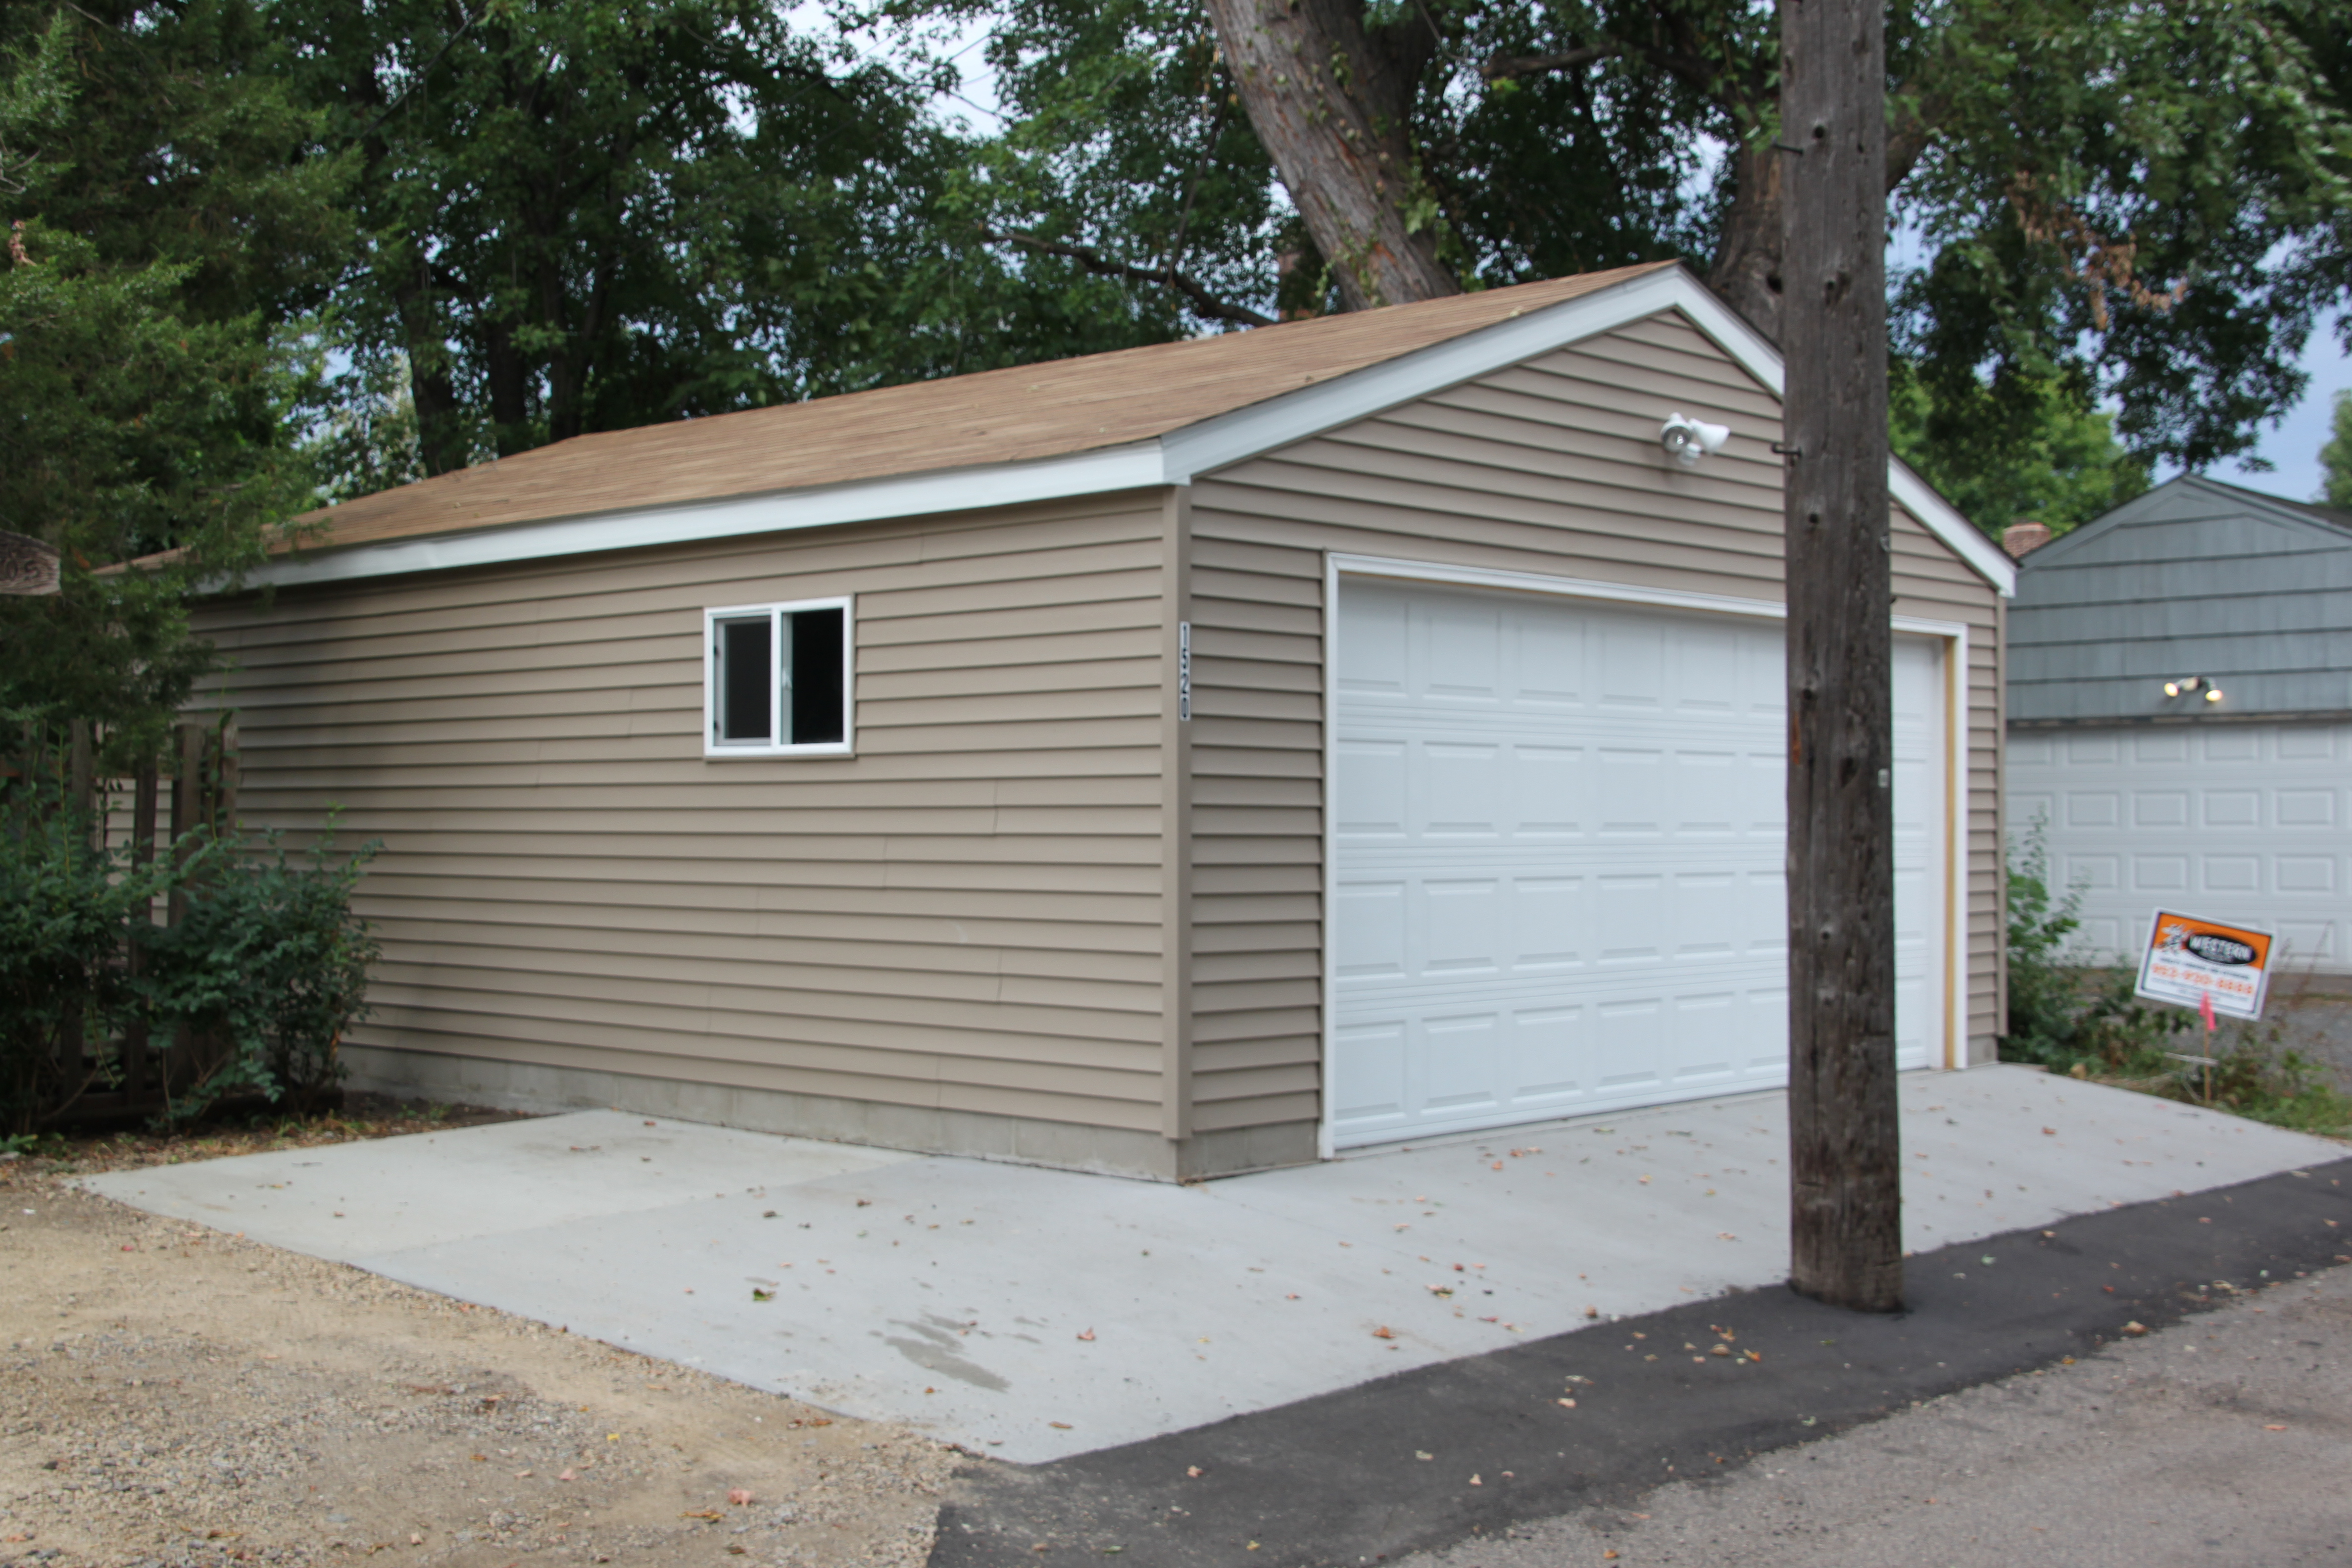 St Paul Garage Location Issues